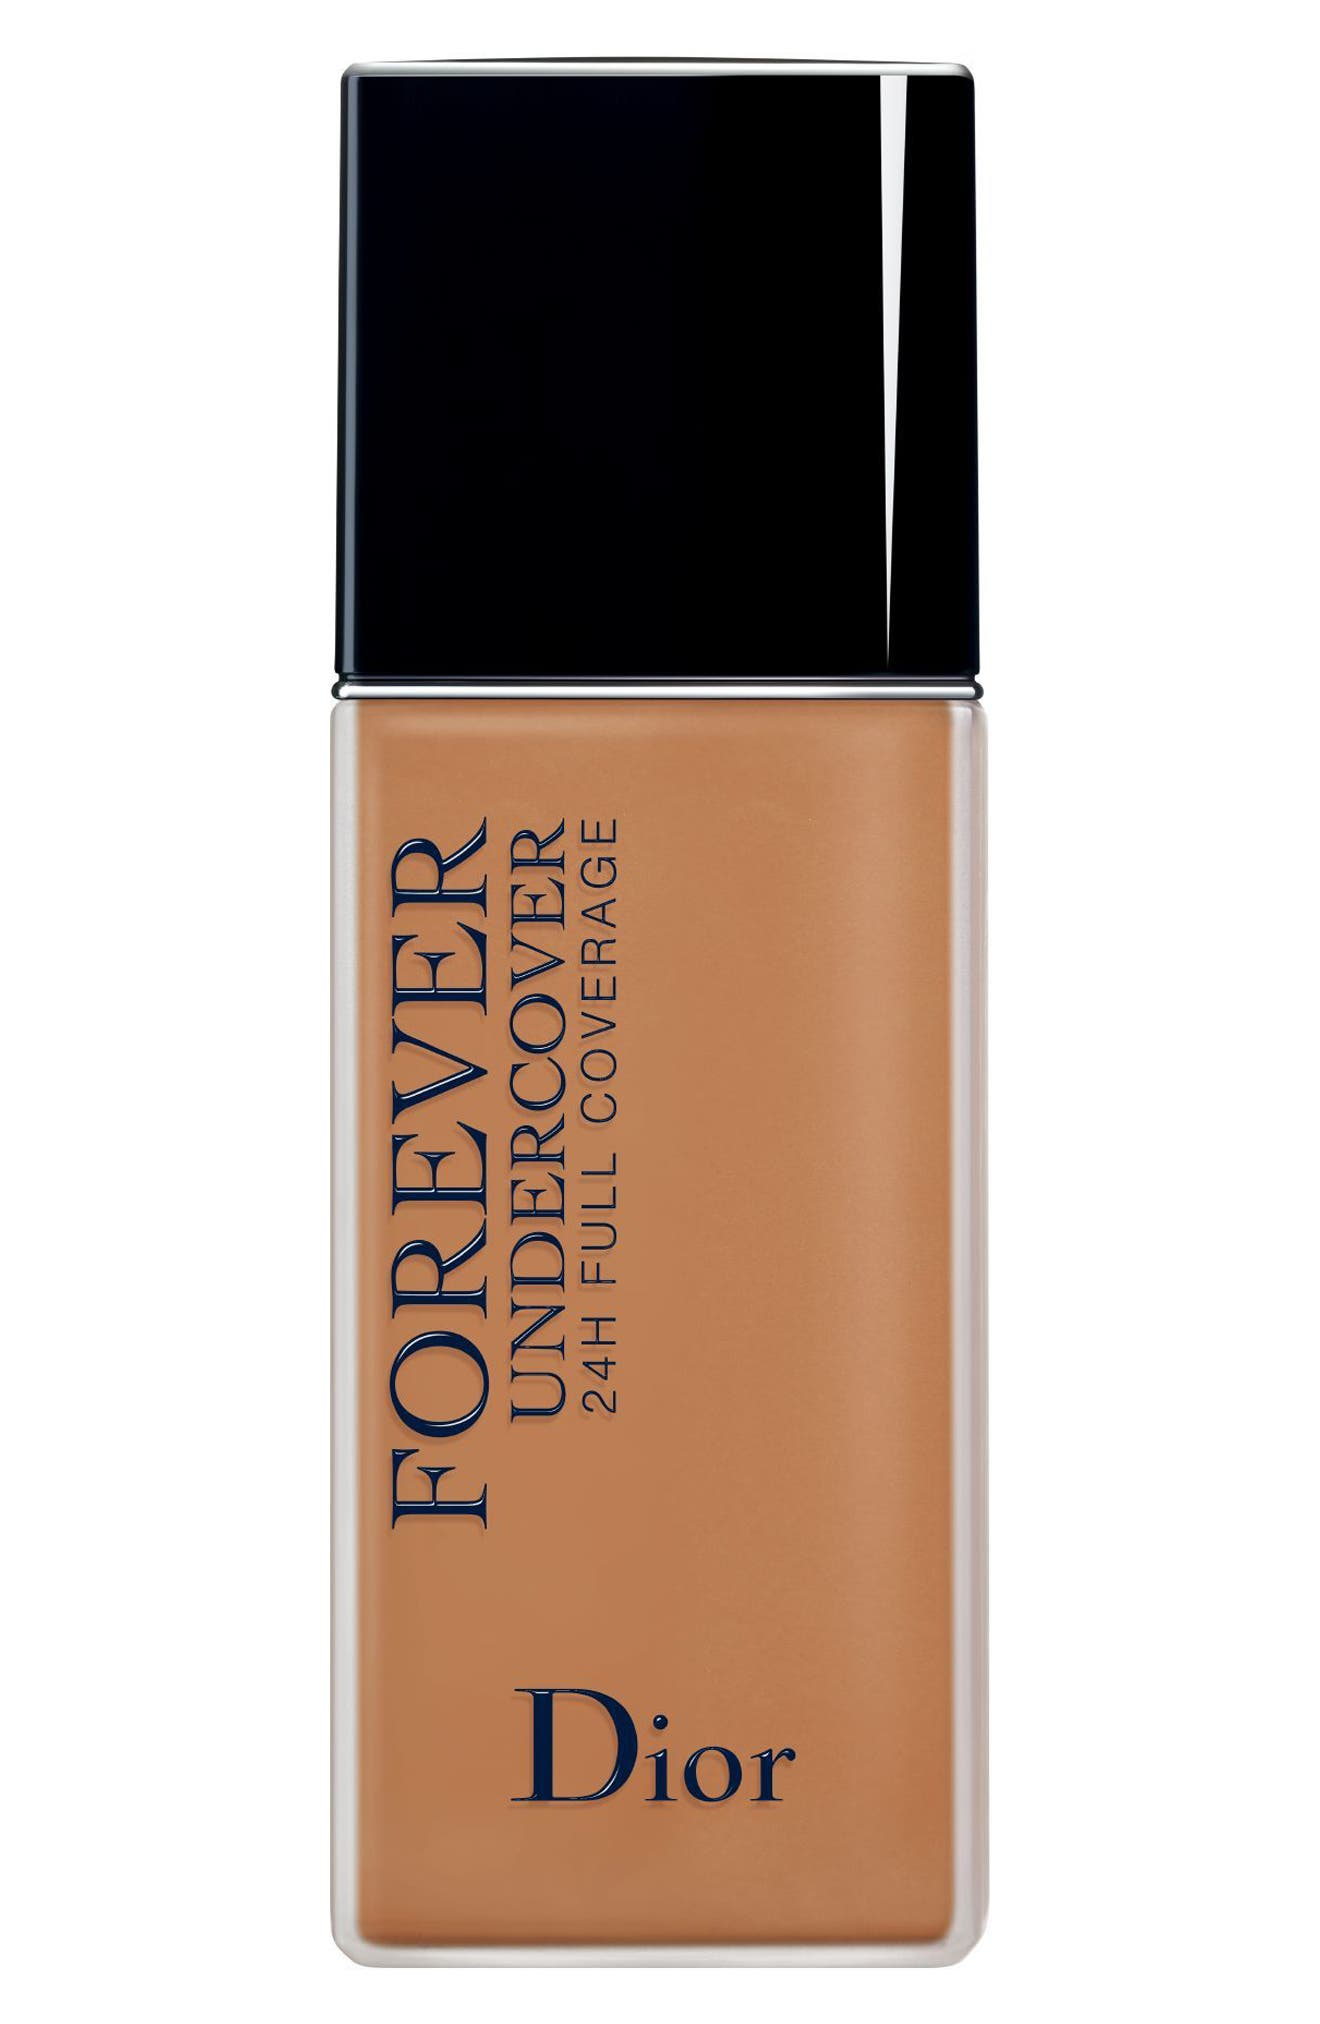 Diorskin Forever Undercover 24-Hour Full Coverage Water-Based Foundation,                             Main thumbnail 1, color,                             051 PRALINE